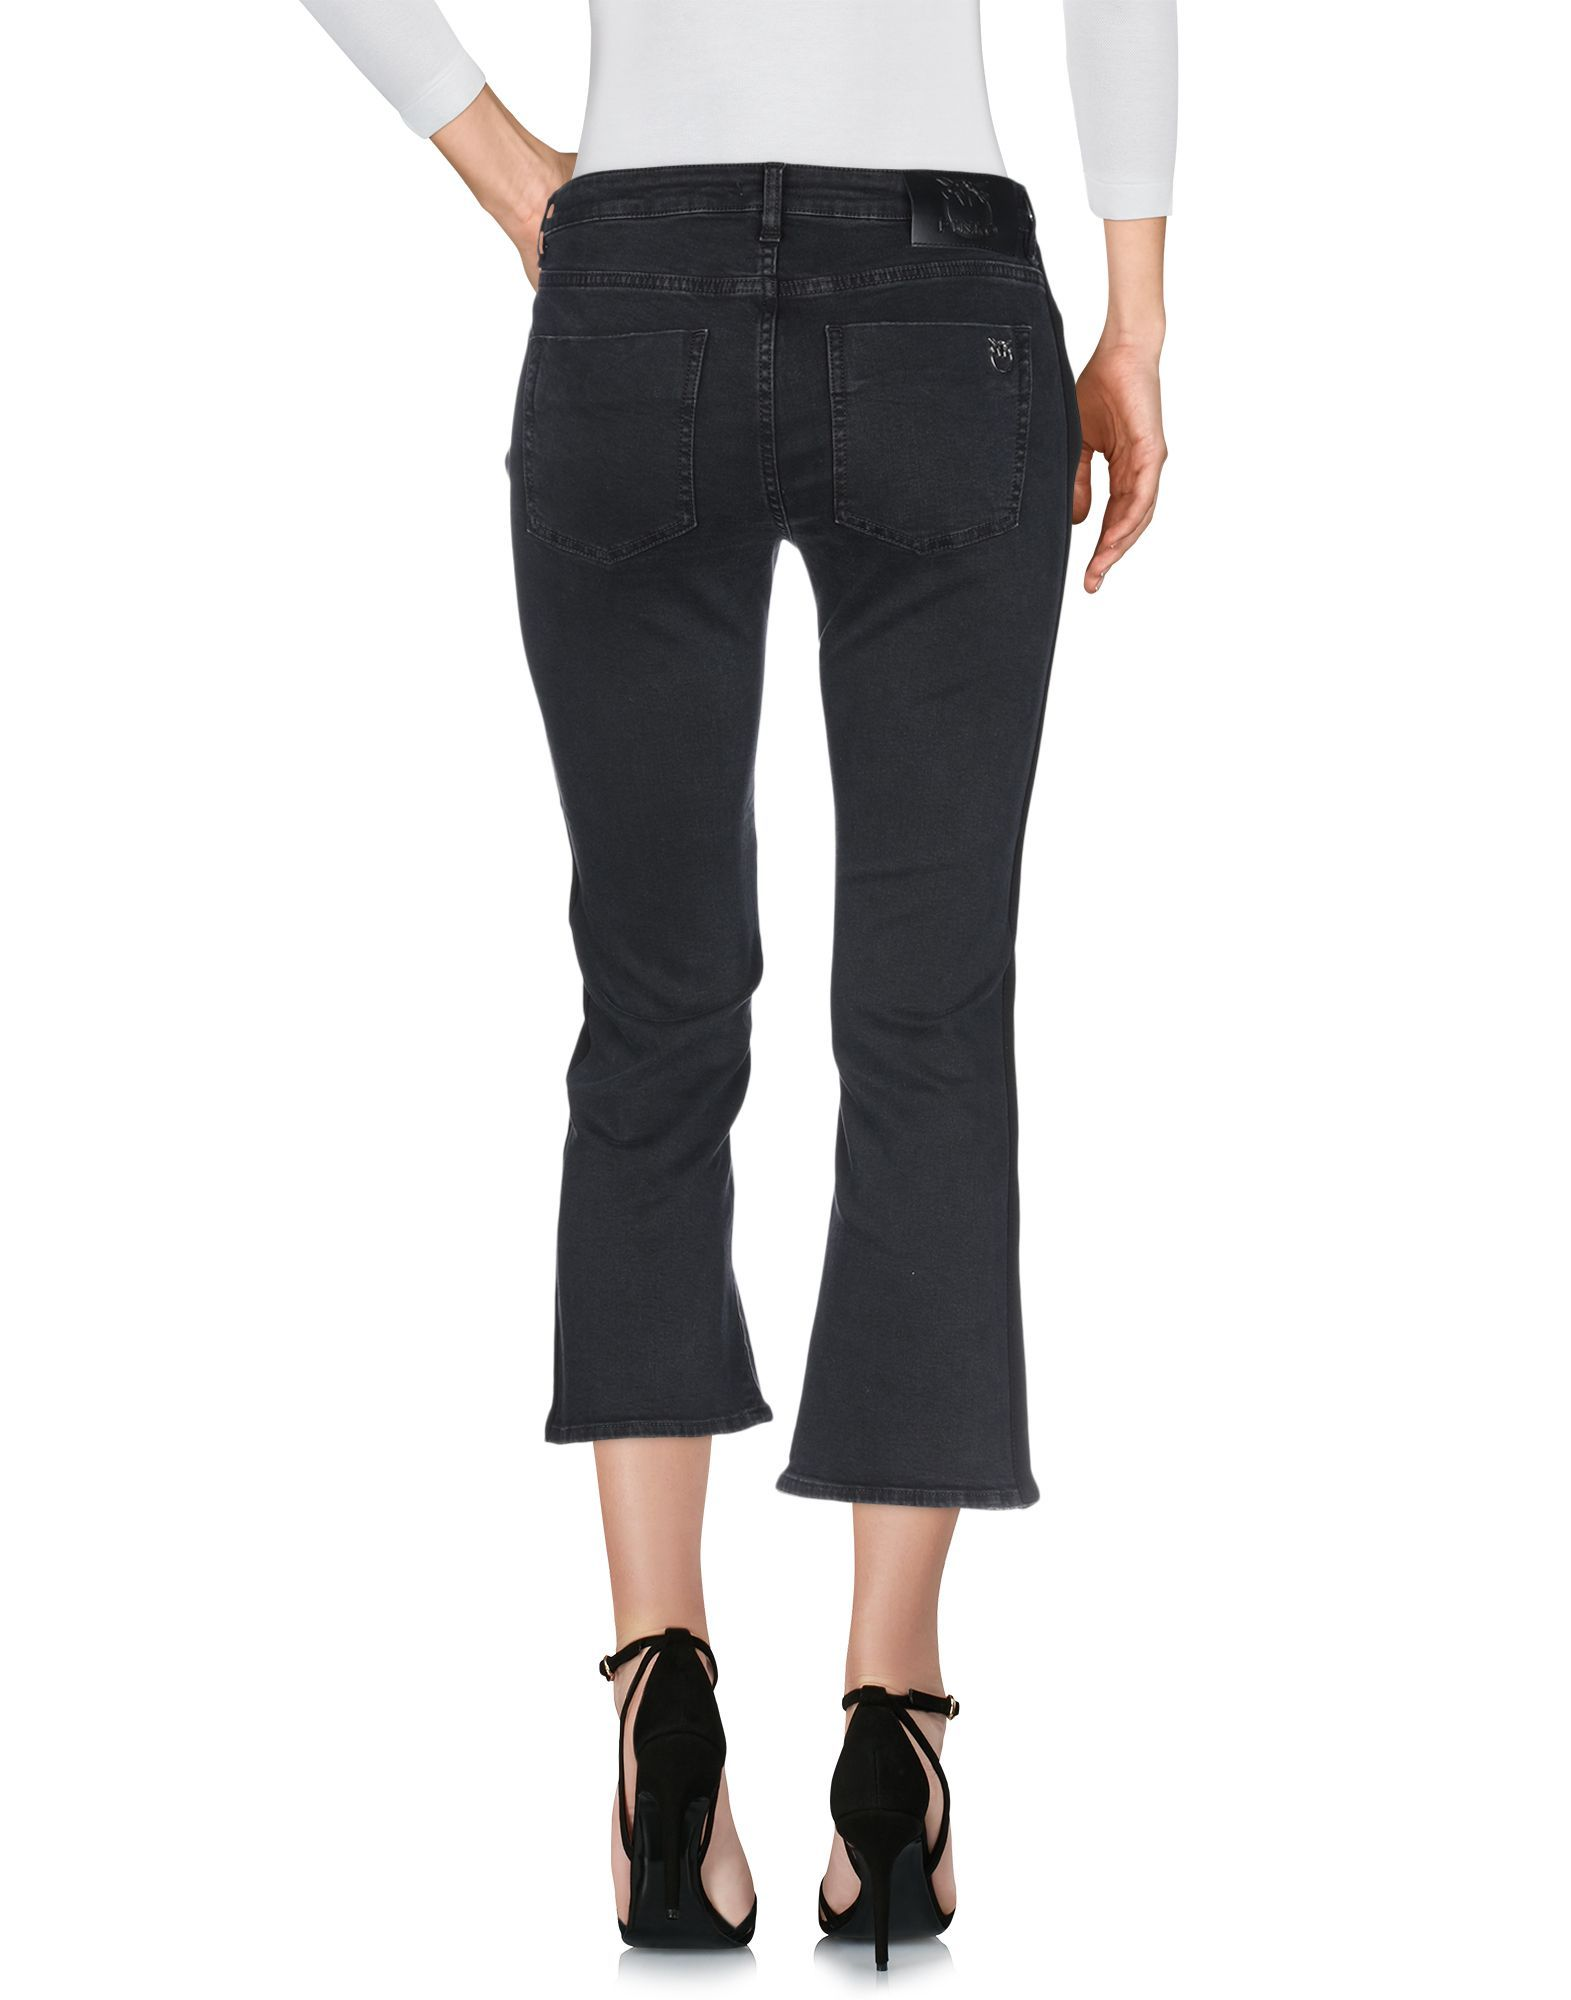 Pinko Black Cotton Jeans